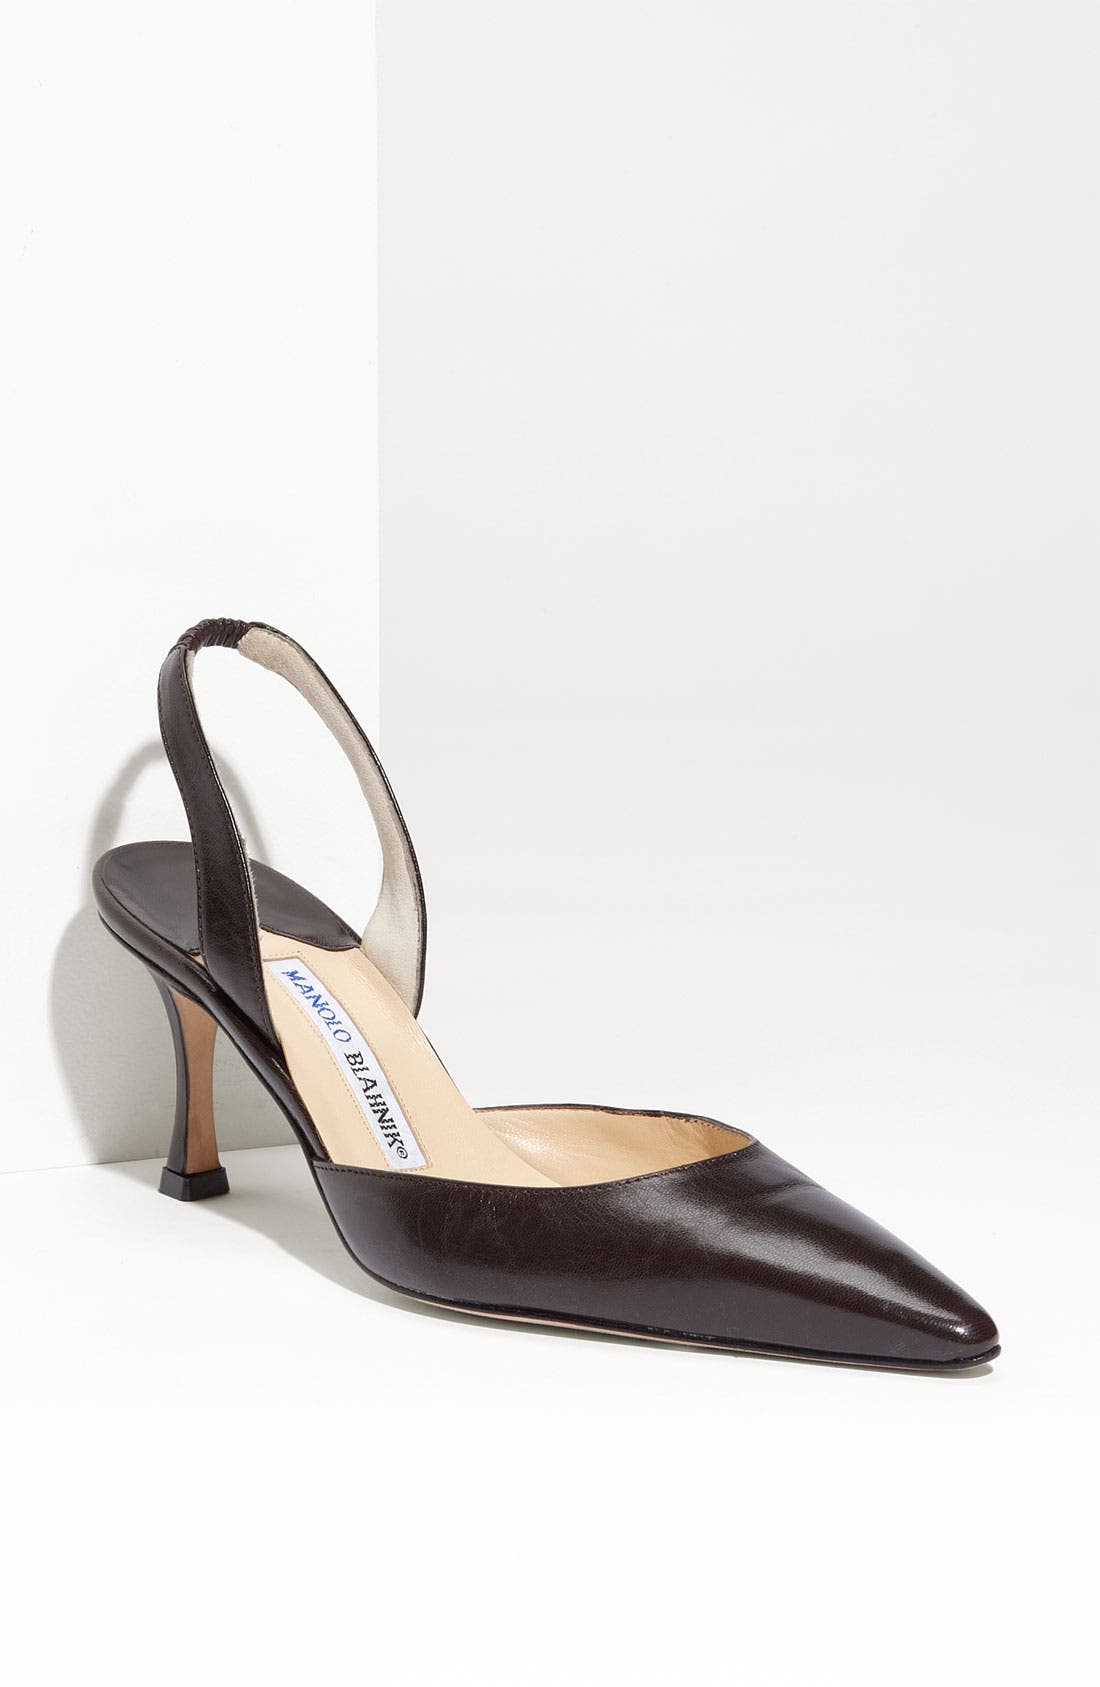 Alternate Image 1 Selected - Manolo Blahnik 'Carolyne 7' Slingback Pump